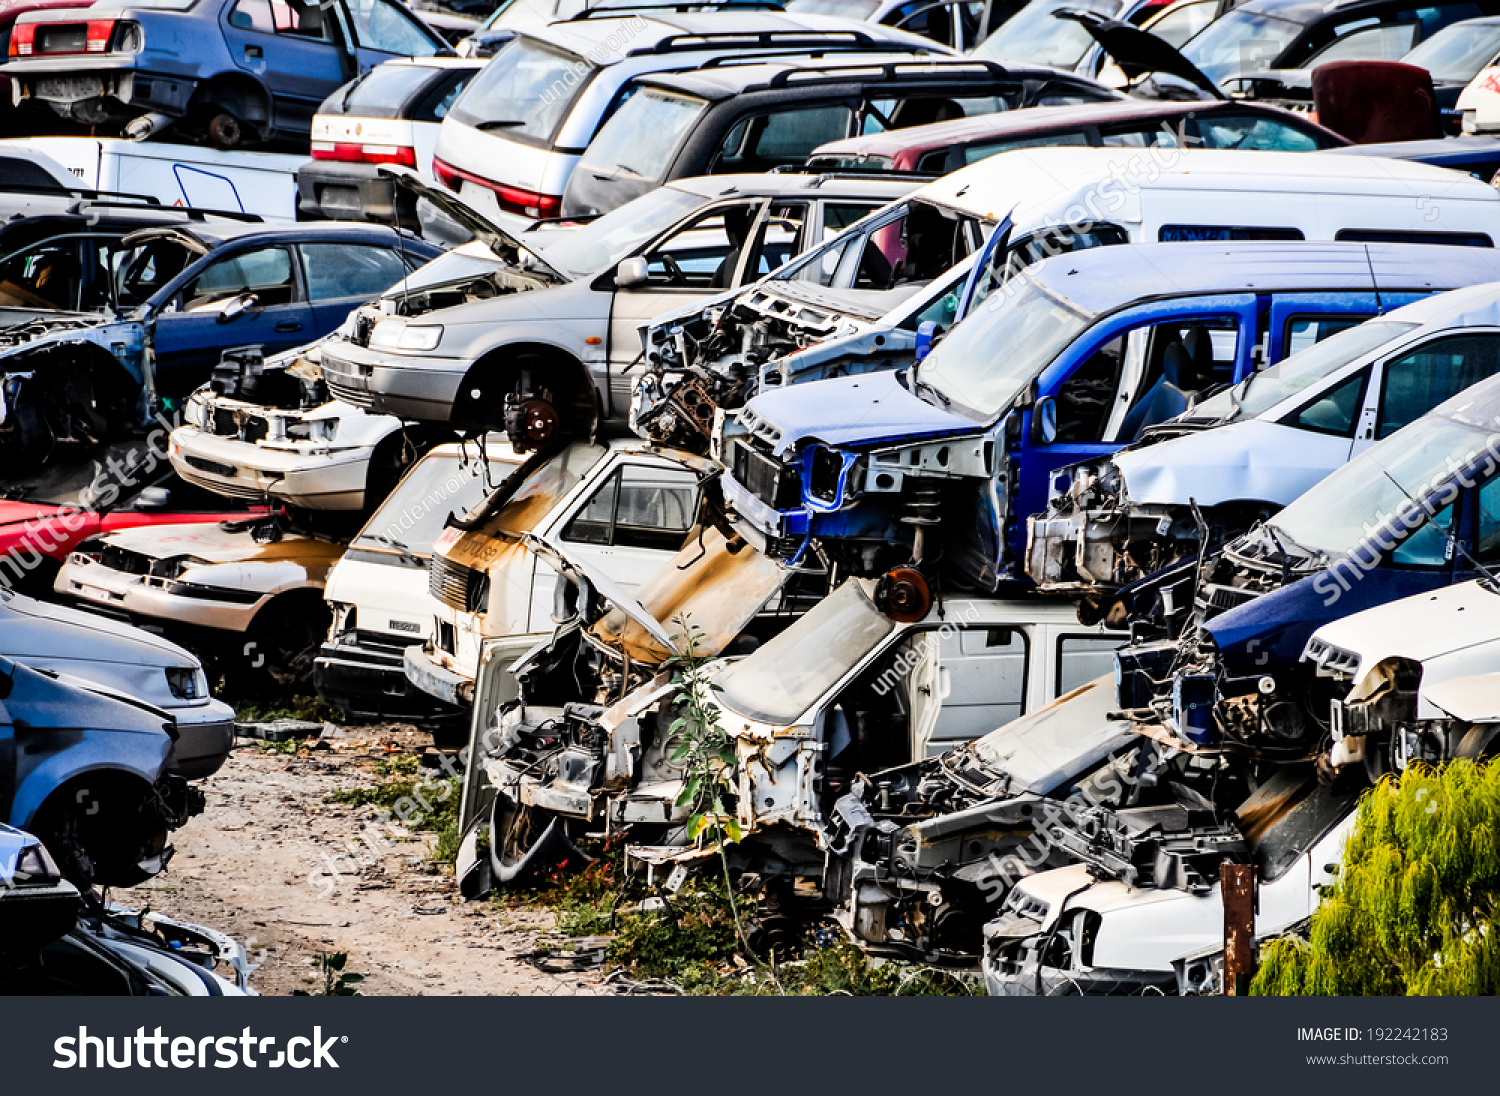 Scrap Yard Pile Crushed Cars Tenerife Stock Photo (Royalty Free ...